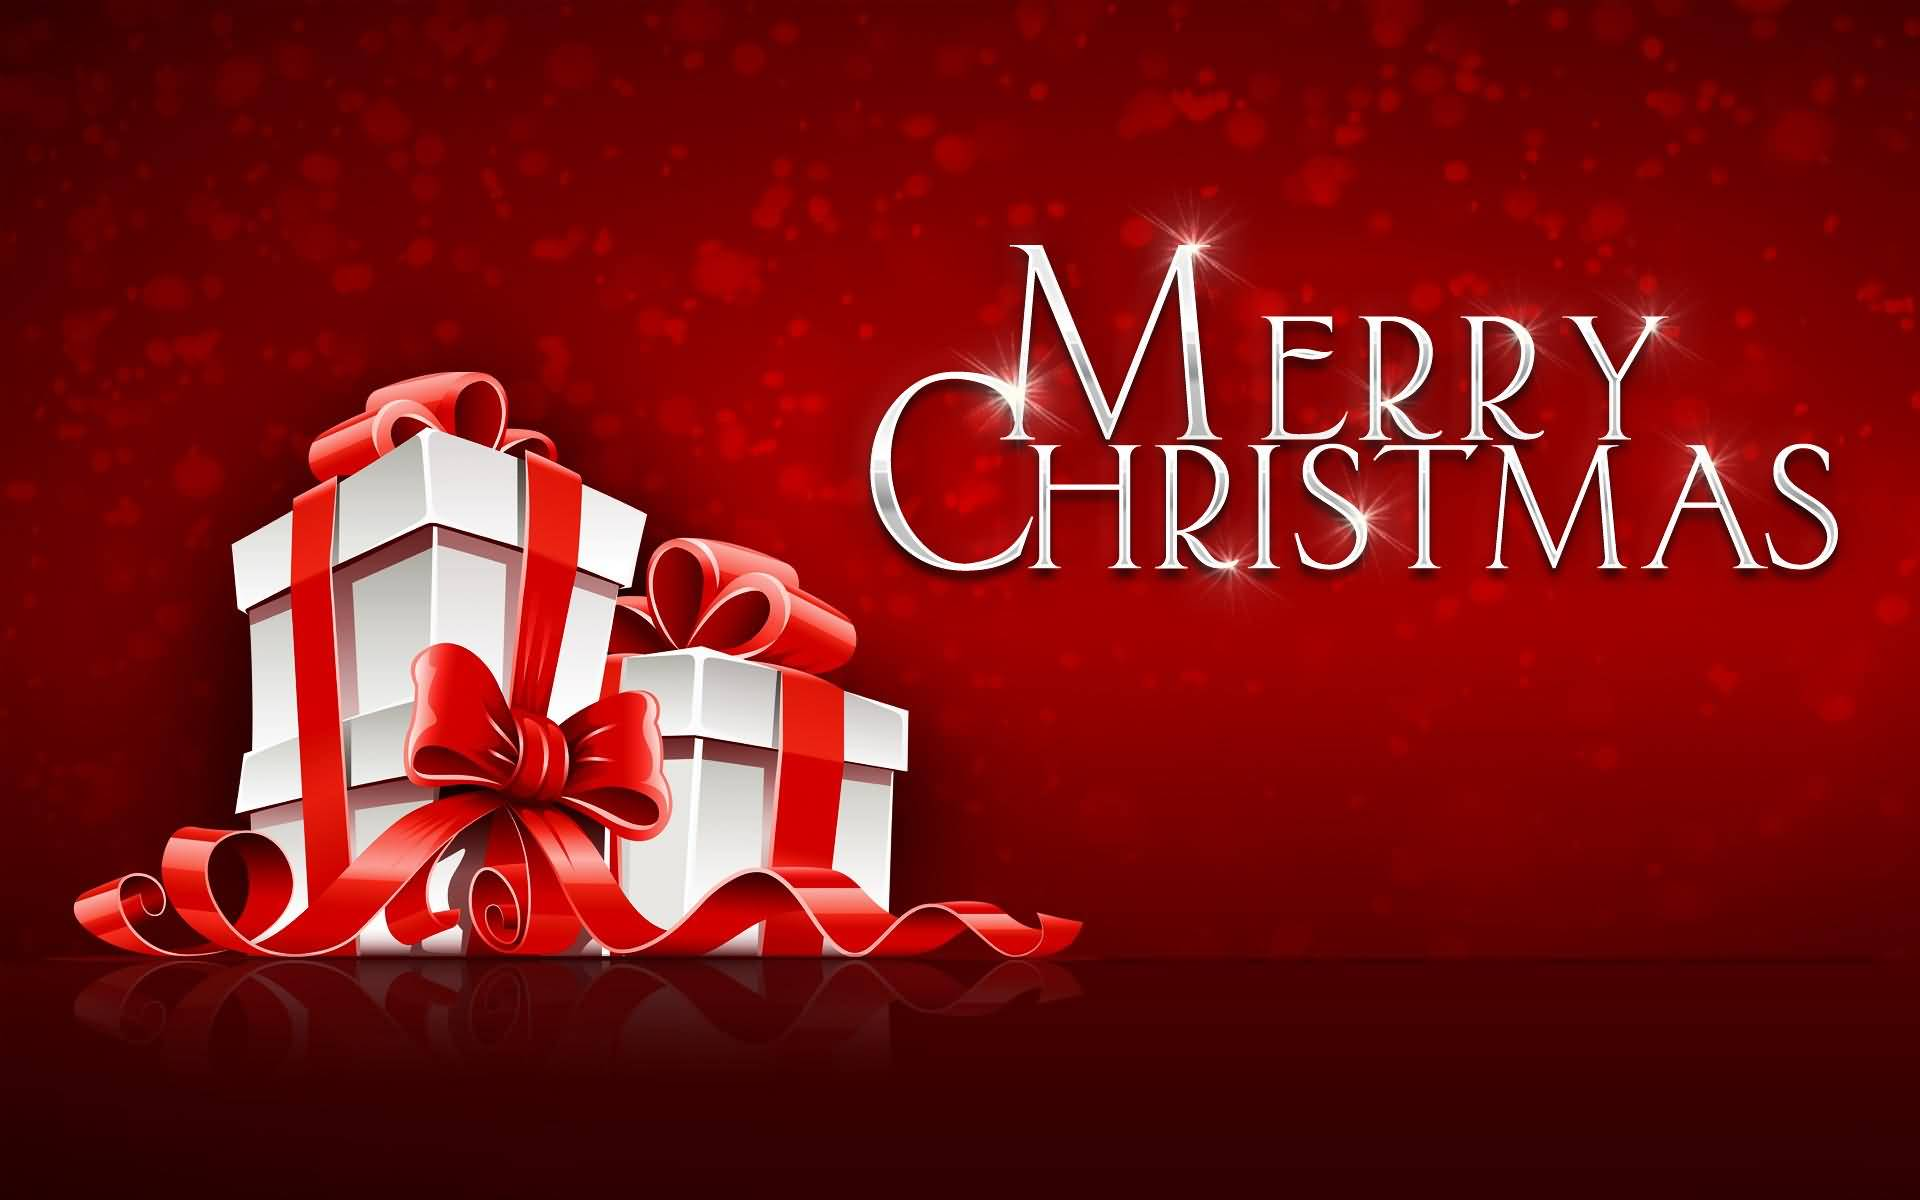 Merry Christmas Cards Image Picture Photo Wallpaper 19